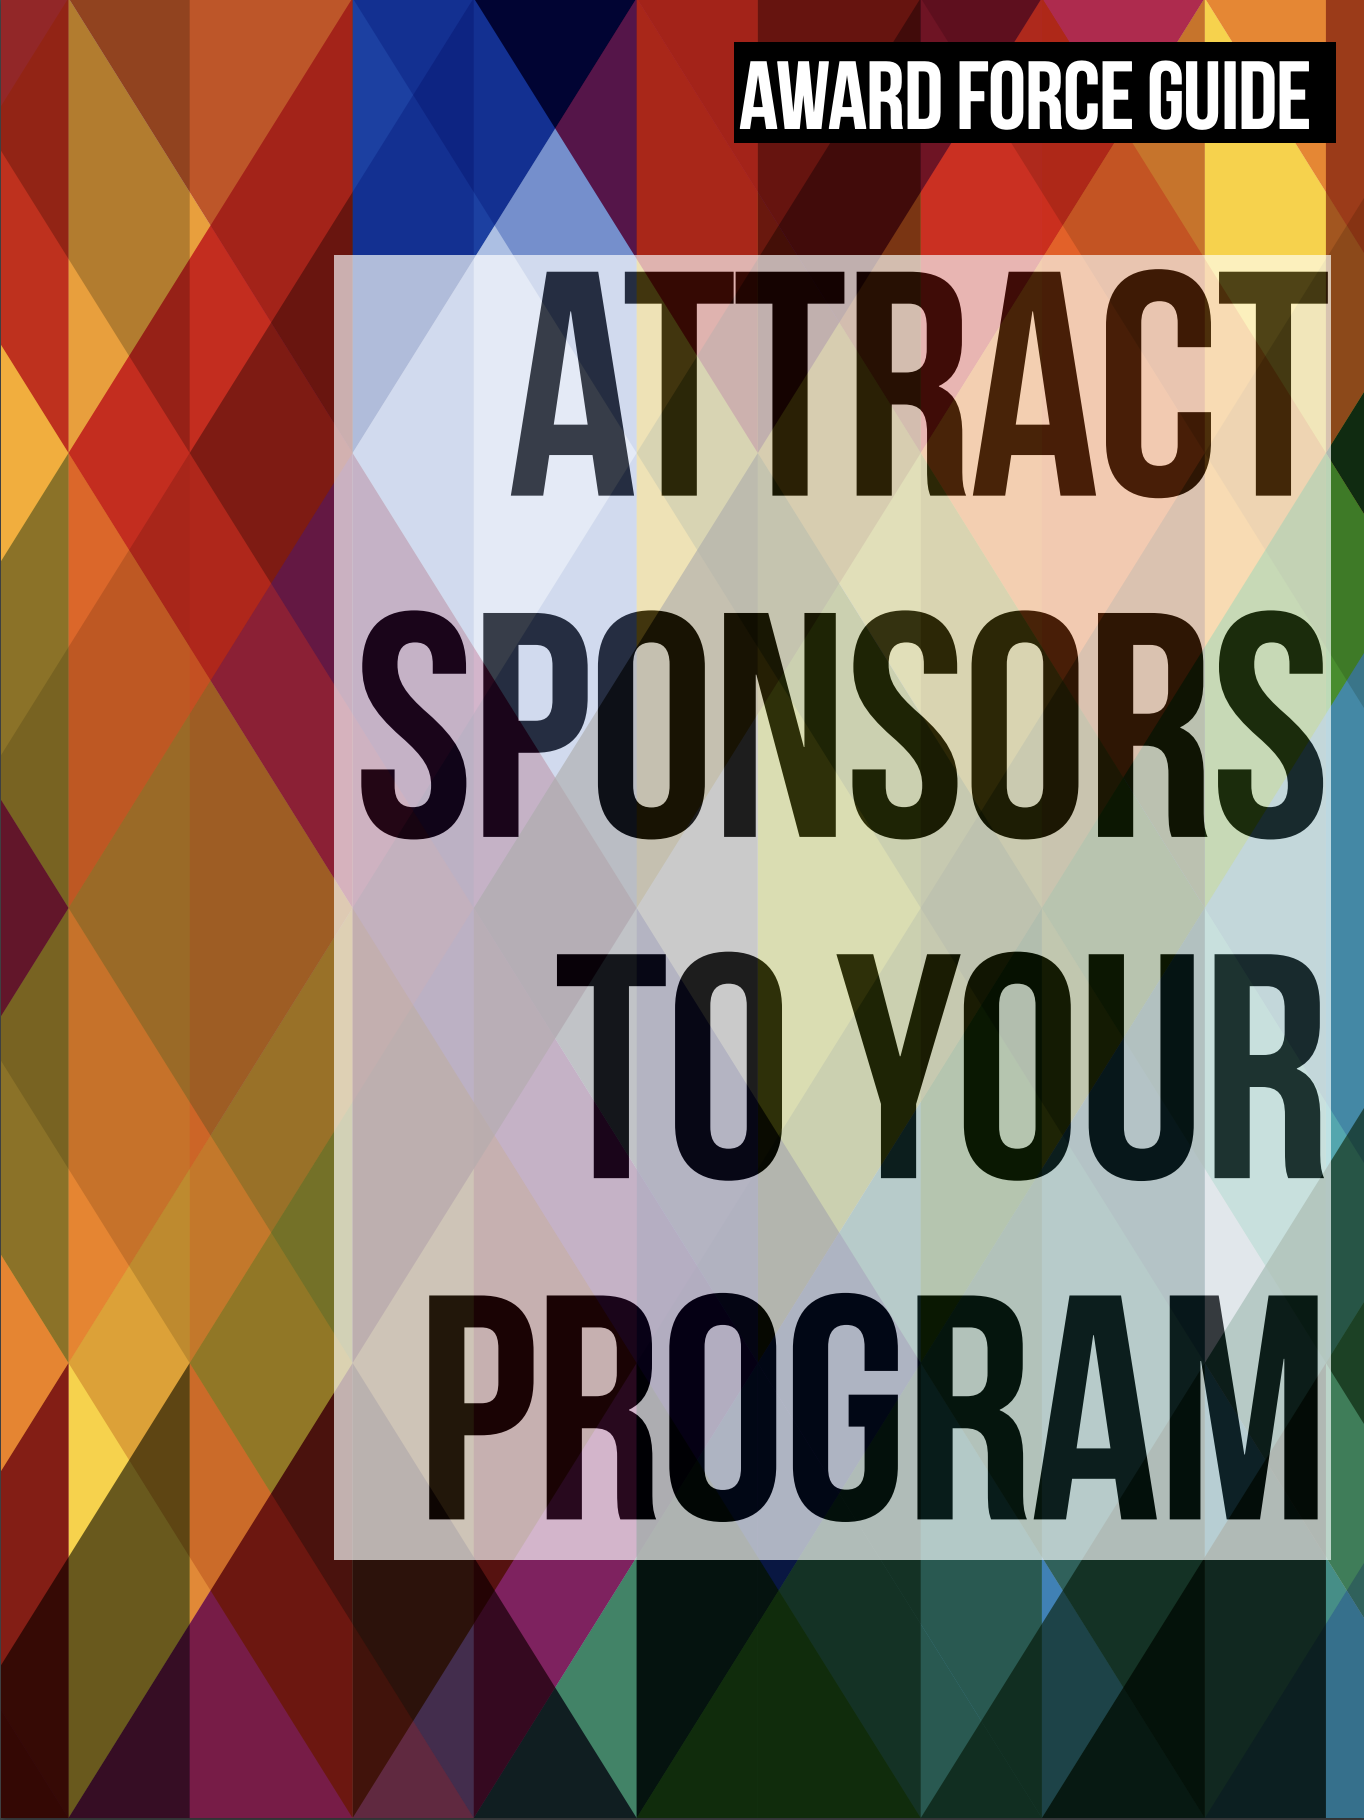 How to attract sponsors to your awards program